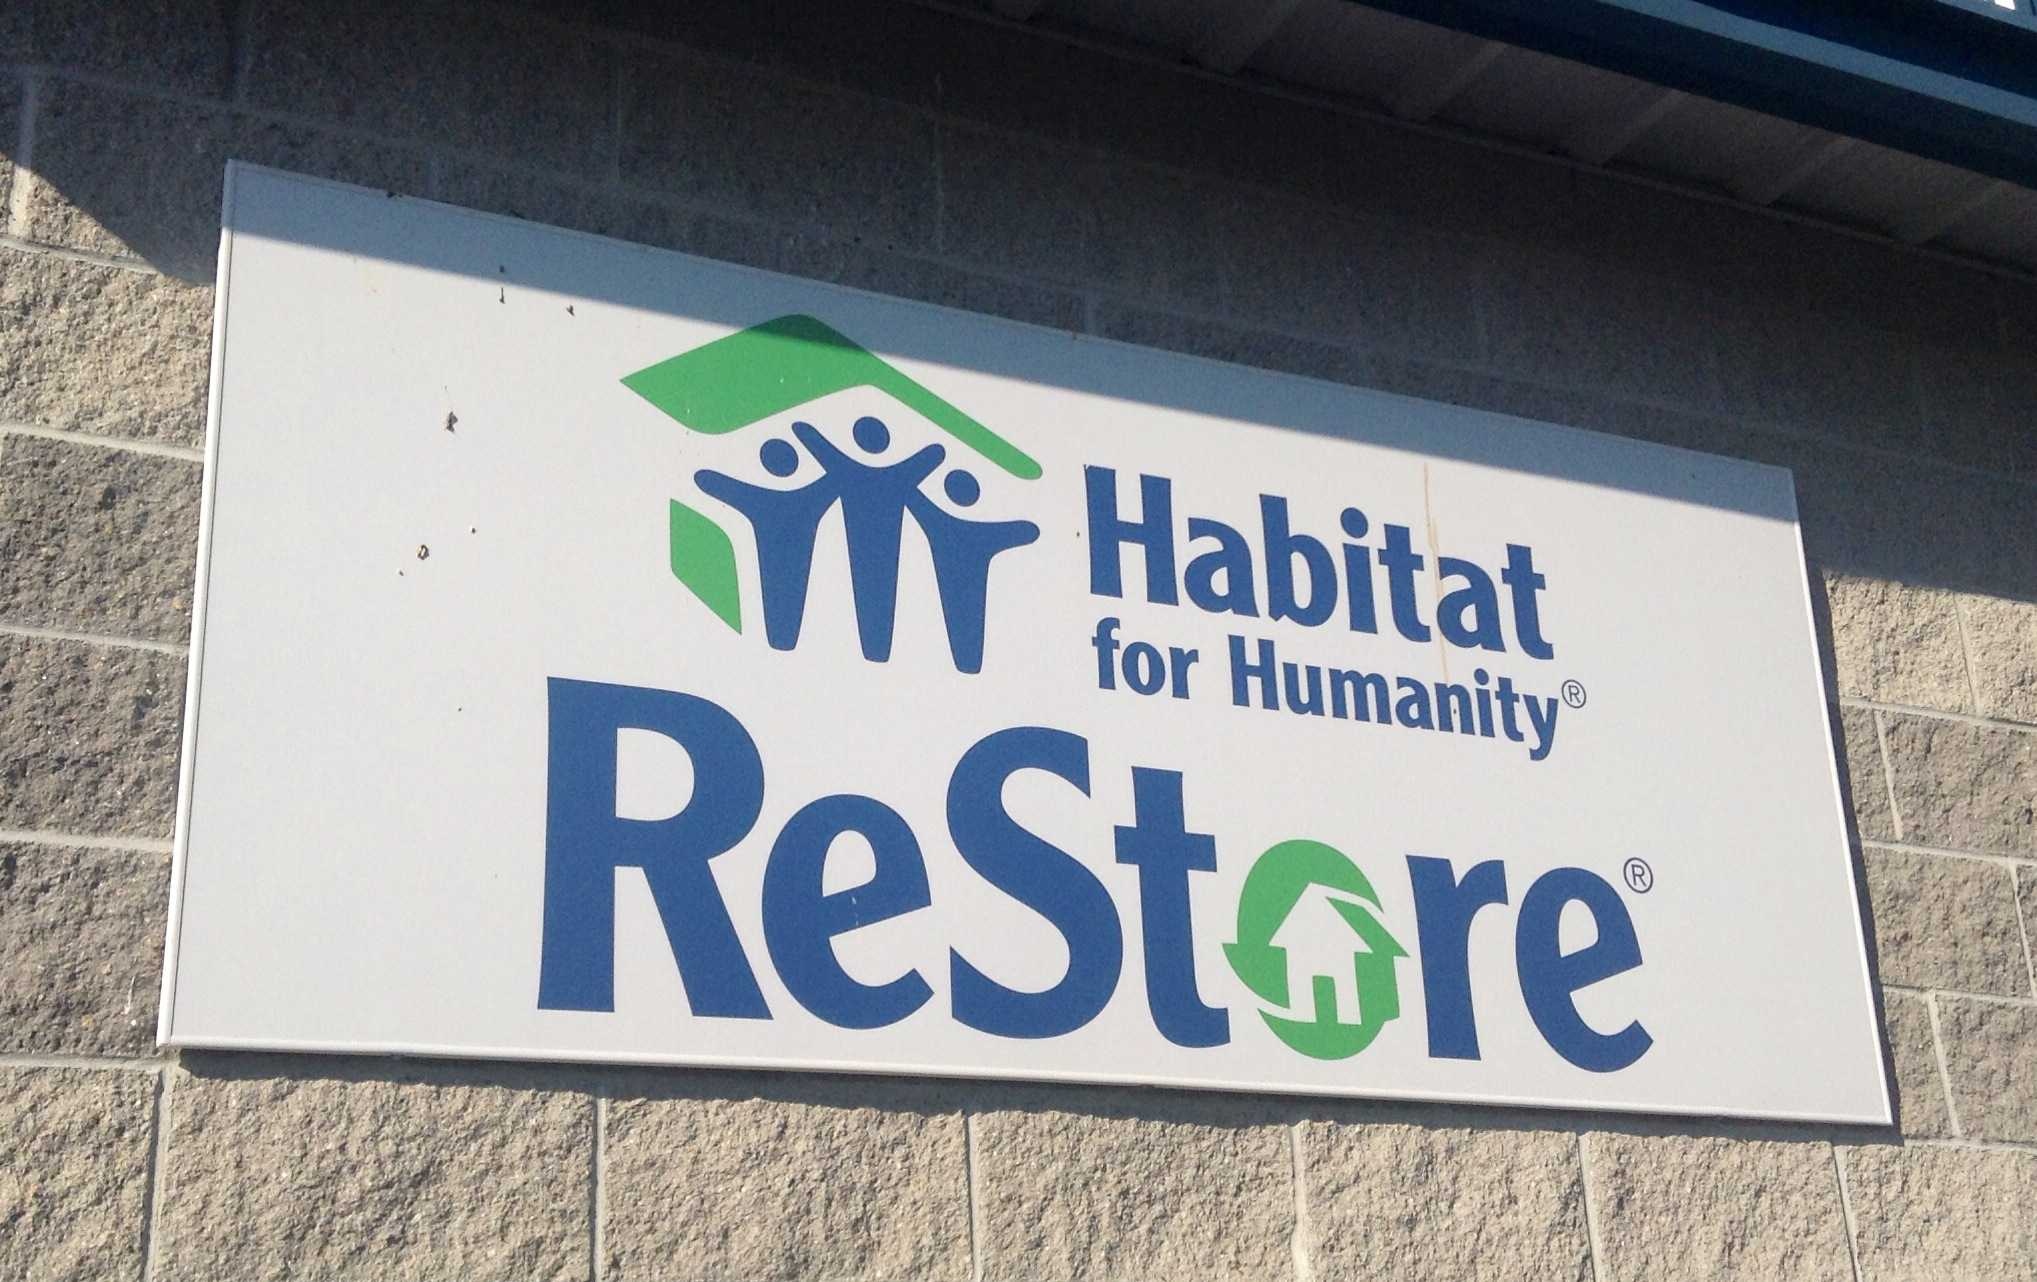 Habitat Restore: A Simple Way to Help Your Community Flourish